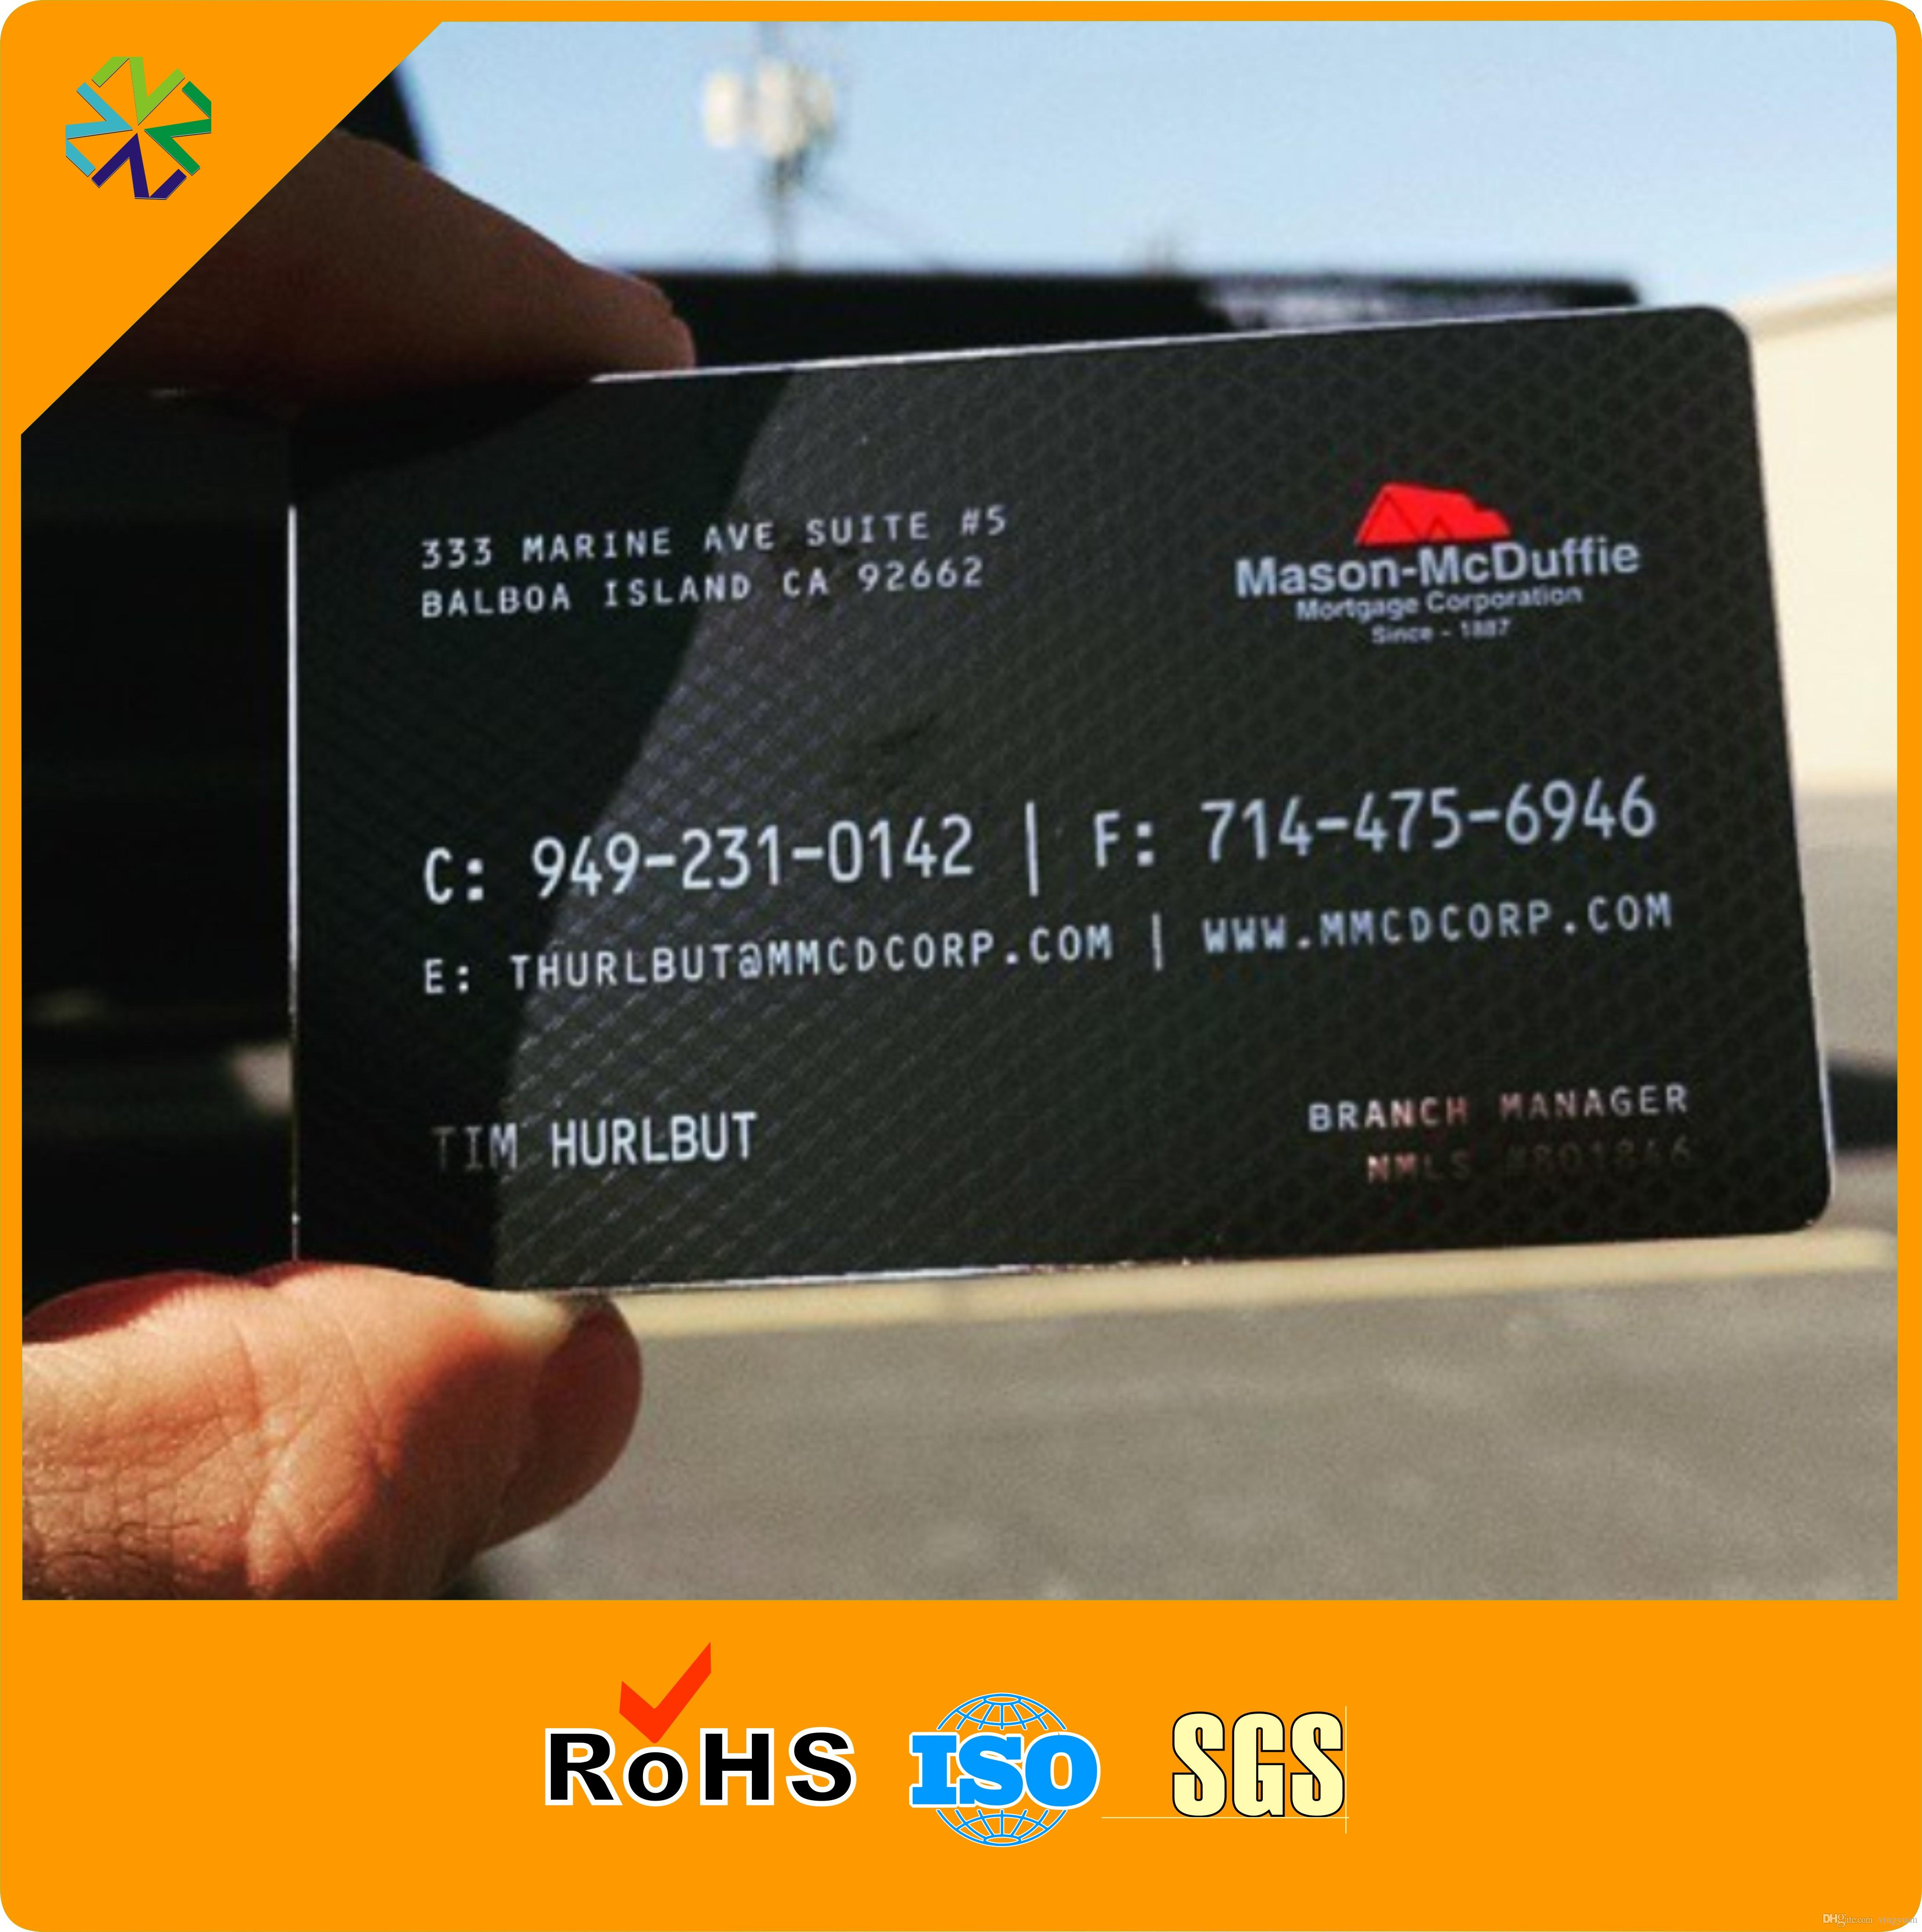 Manufacturer cheap metal business card stainless steel metal card manufacturer cheap metal business card stainless steel metal card glossy stainless metal business cards stainless metal business cards metal business cards reheart Image collections